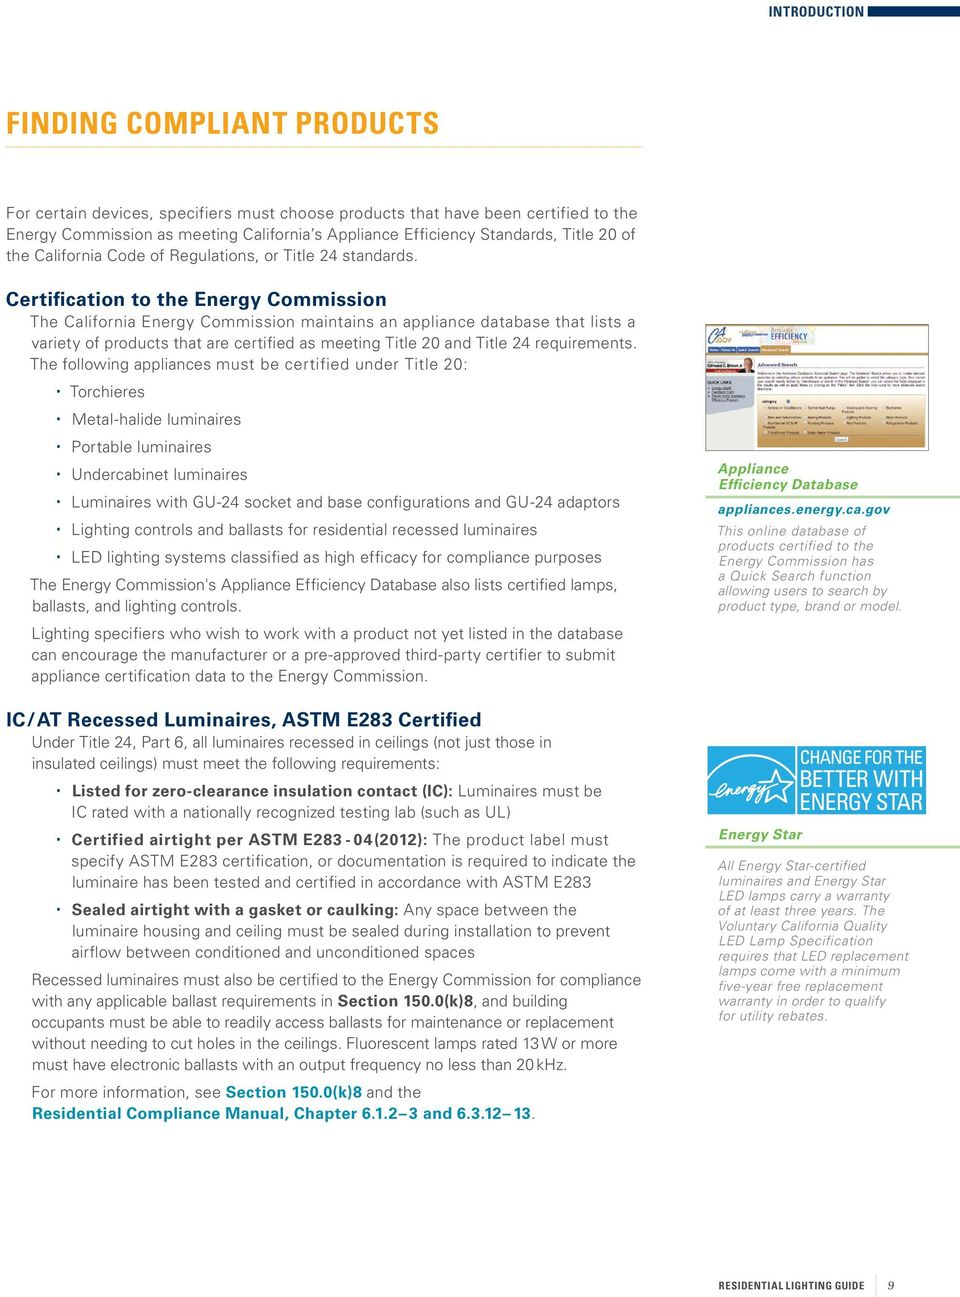 2013 Title 24 Part 6 A Guide To Meeting Or Exceeding California